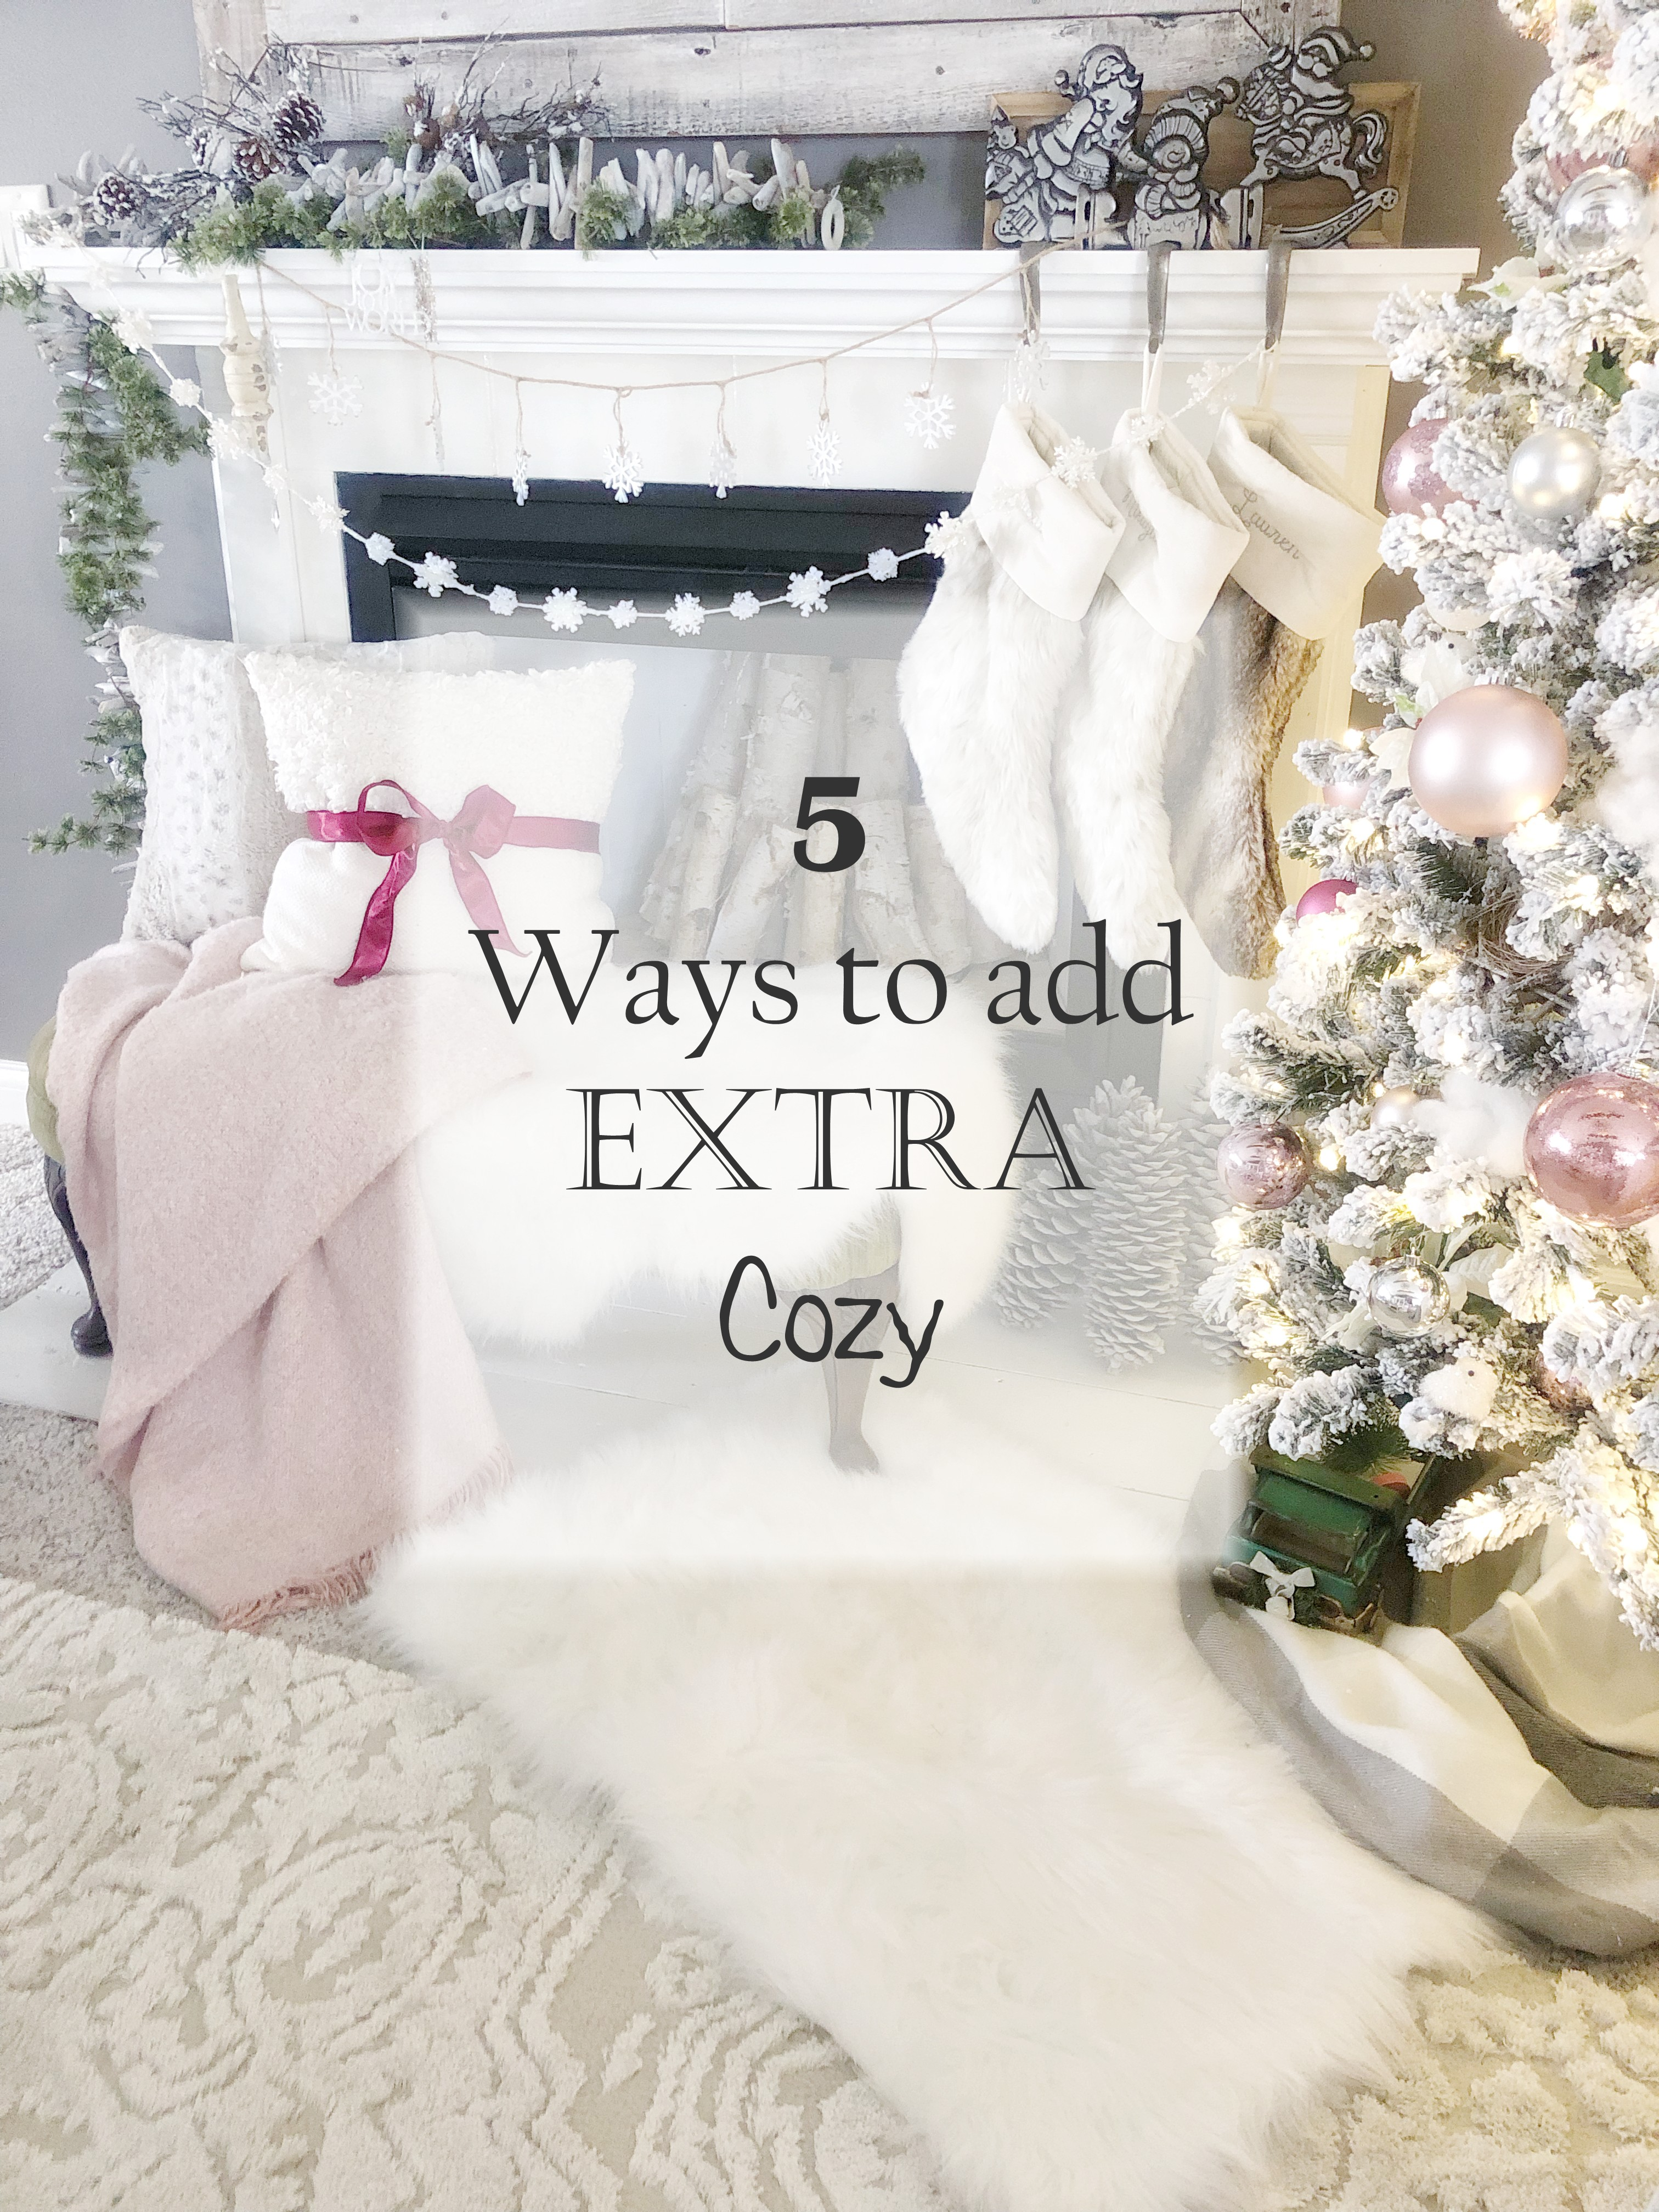 5 ways to add extra cozy